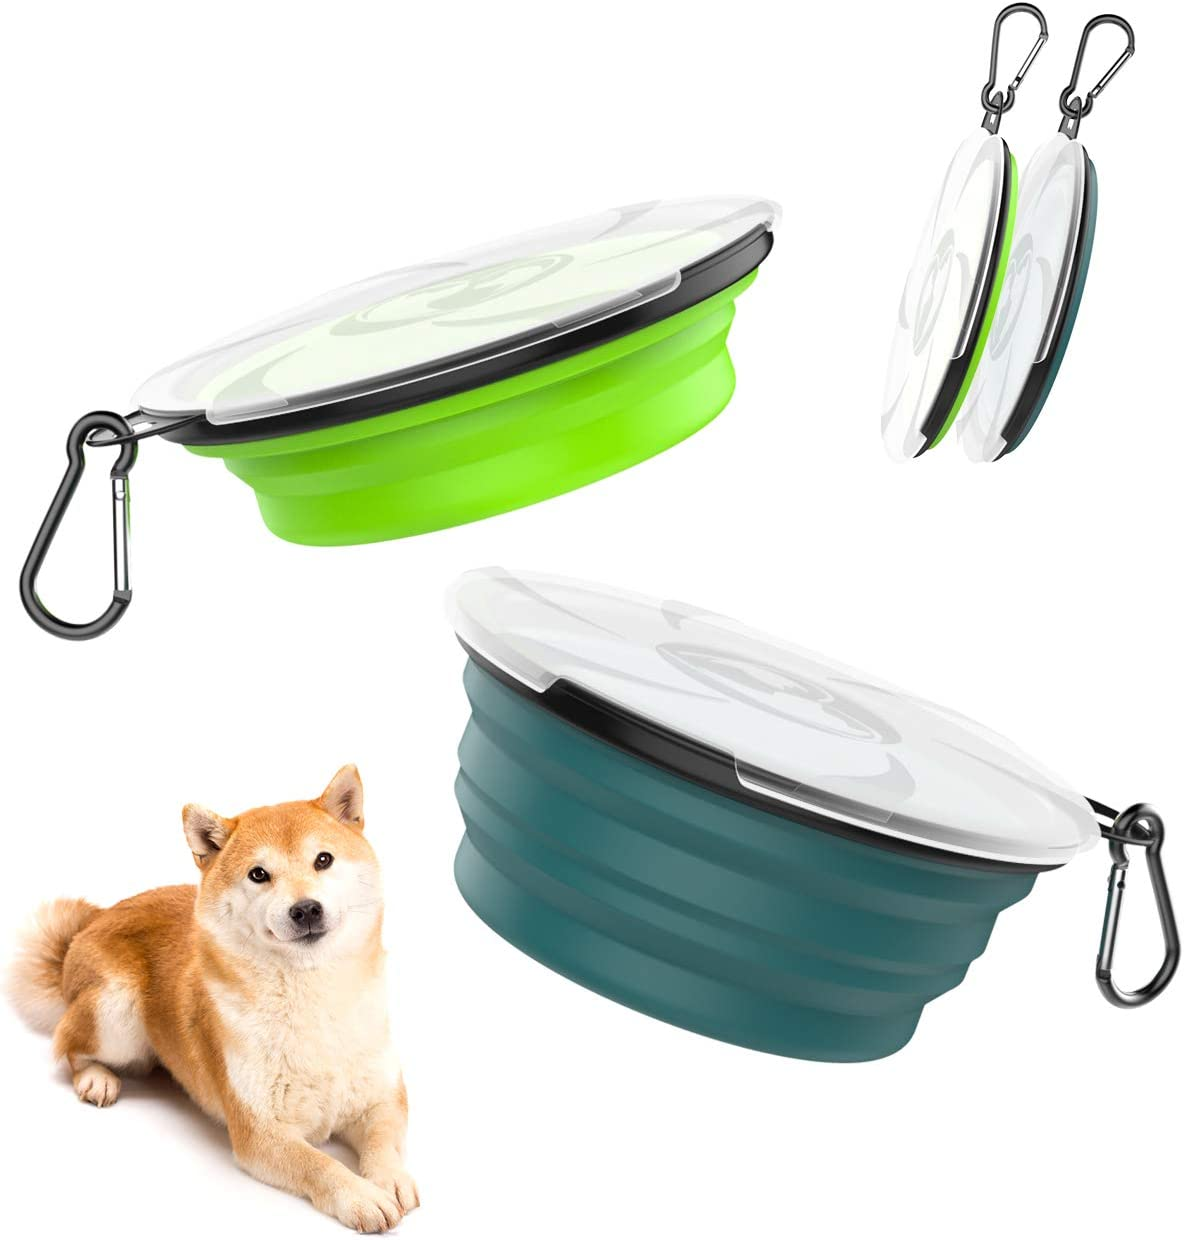 Foldable Expandable Silicone Feeding Bowl for Cat Medium Size Walking Camping Hiking Portable Pet Watering Dish for Traveling Pawaboo Collapsible Dog Travel Bowls